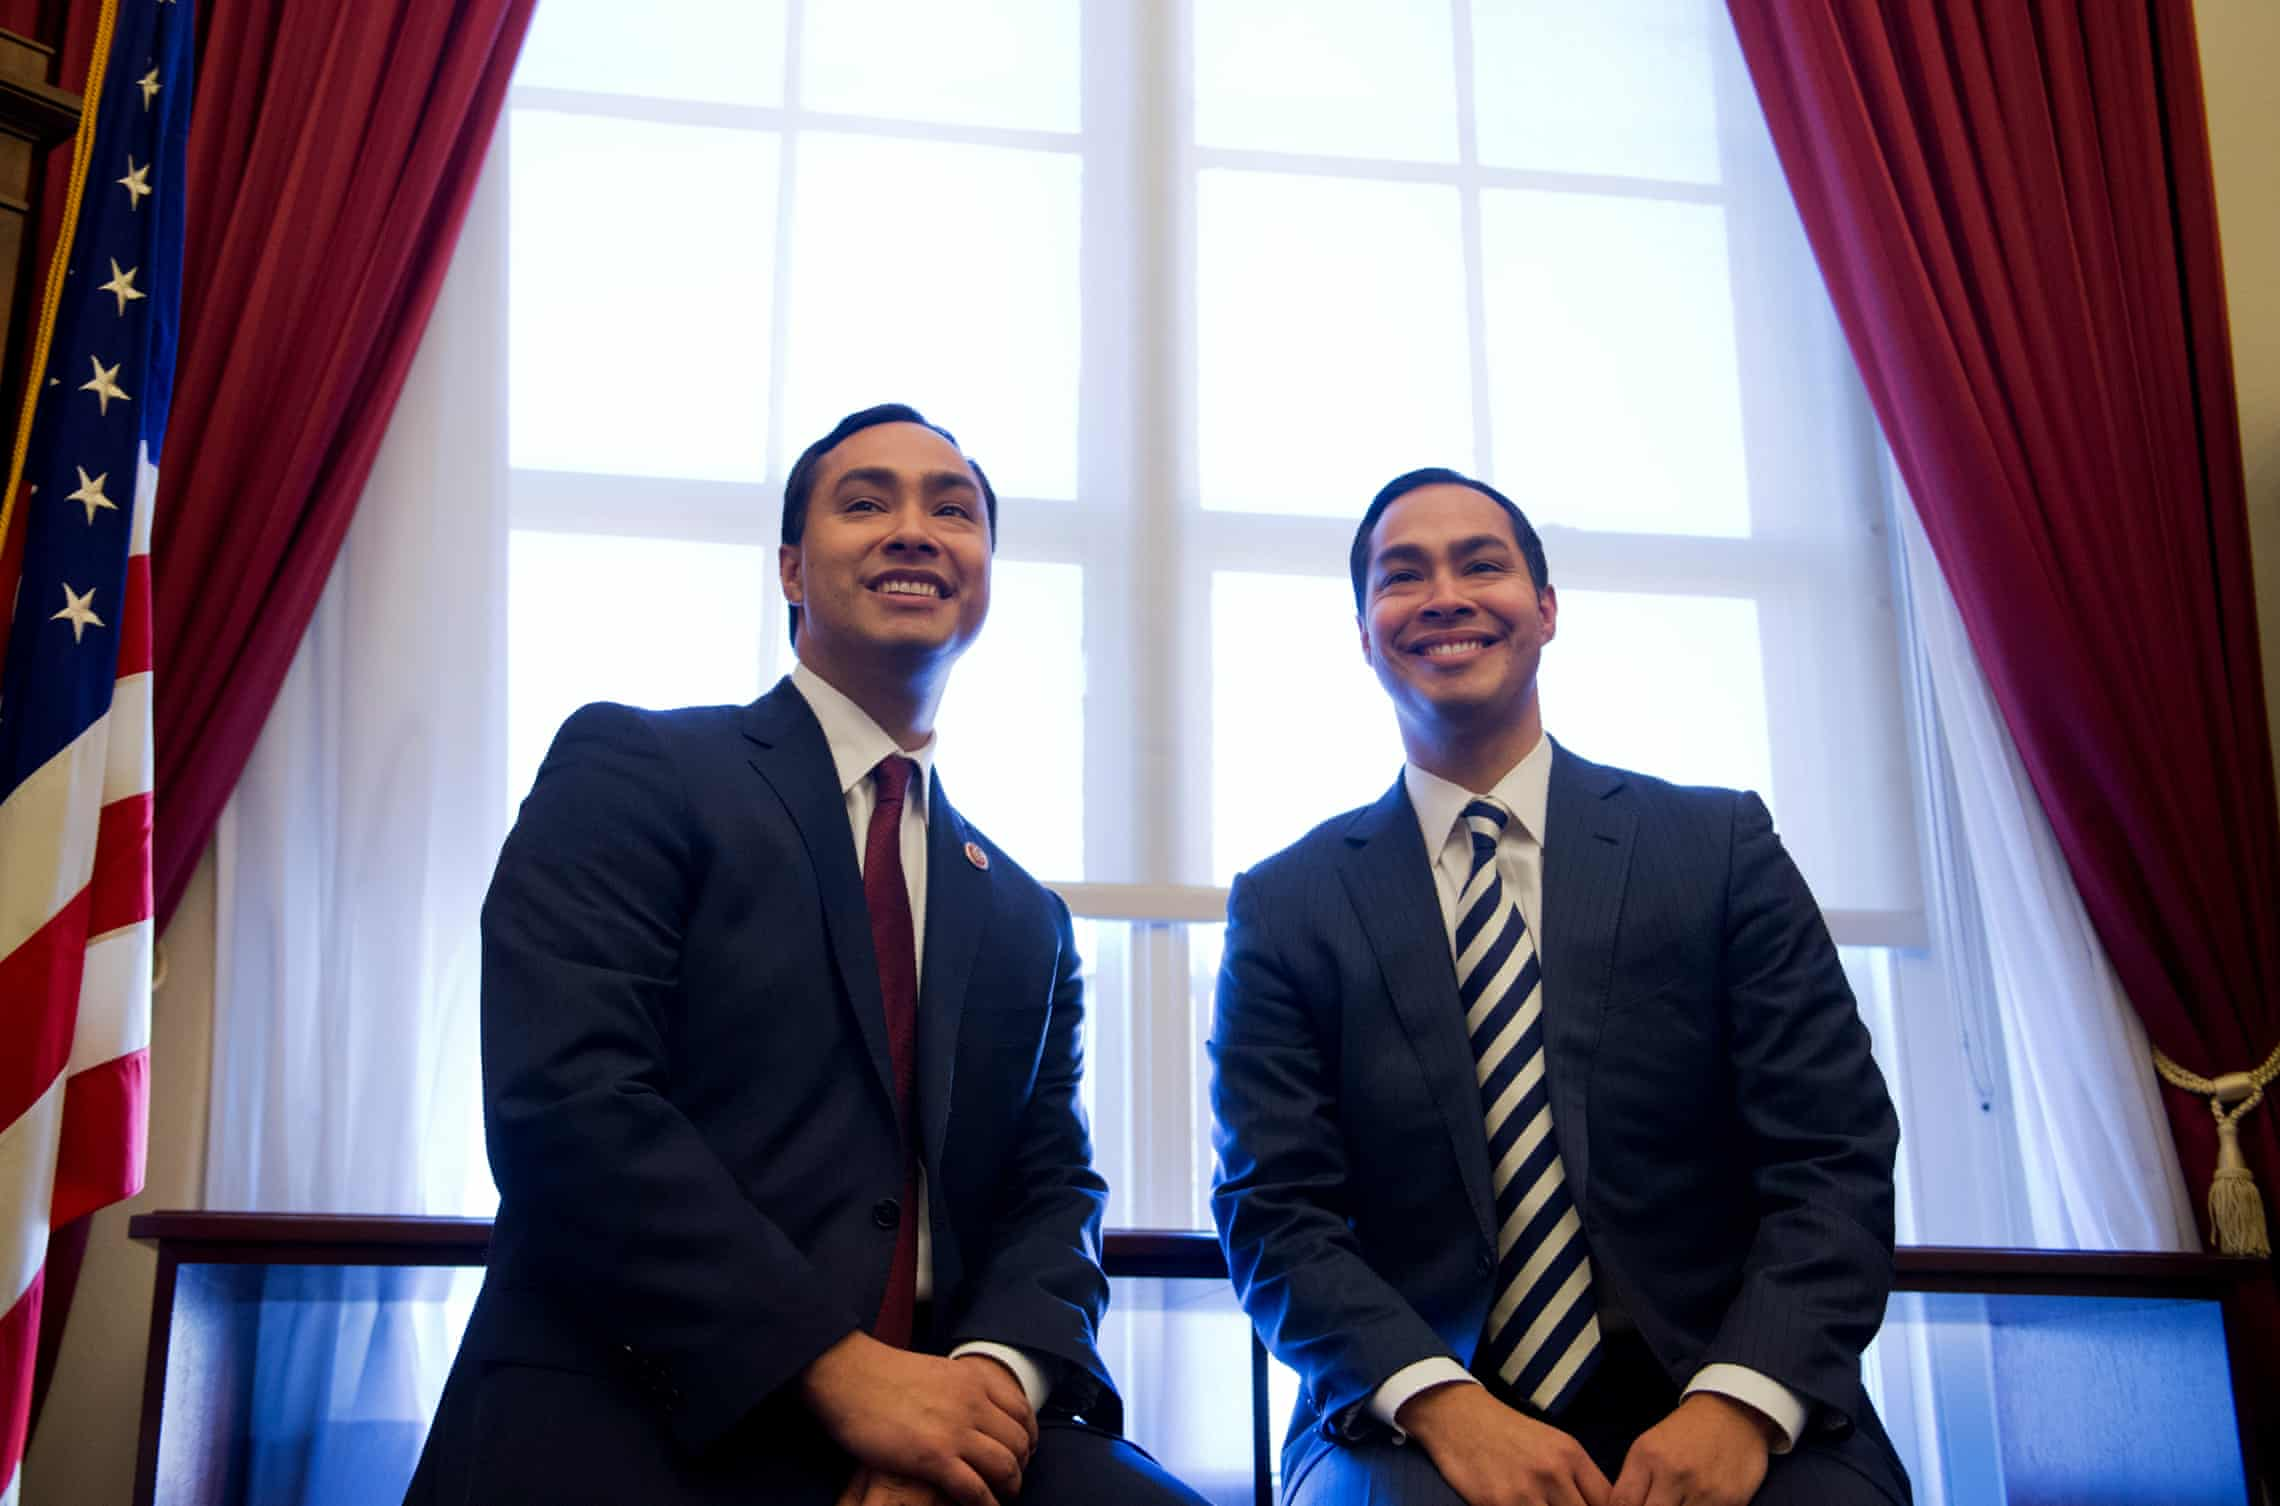 Joaquin, left, with his brother Julián, on the day the 113th Congress was sworn in. Photograph: Tom Williams/CQ-Roll Call